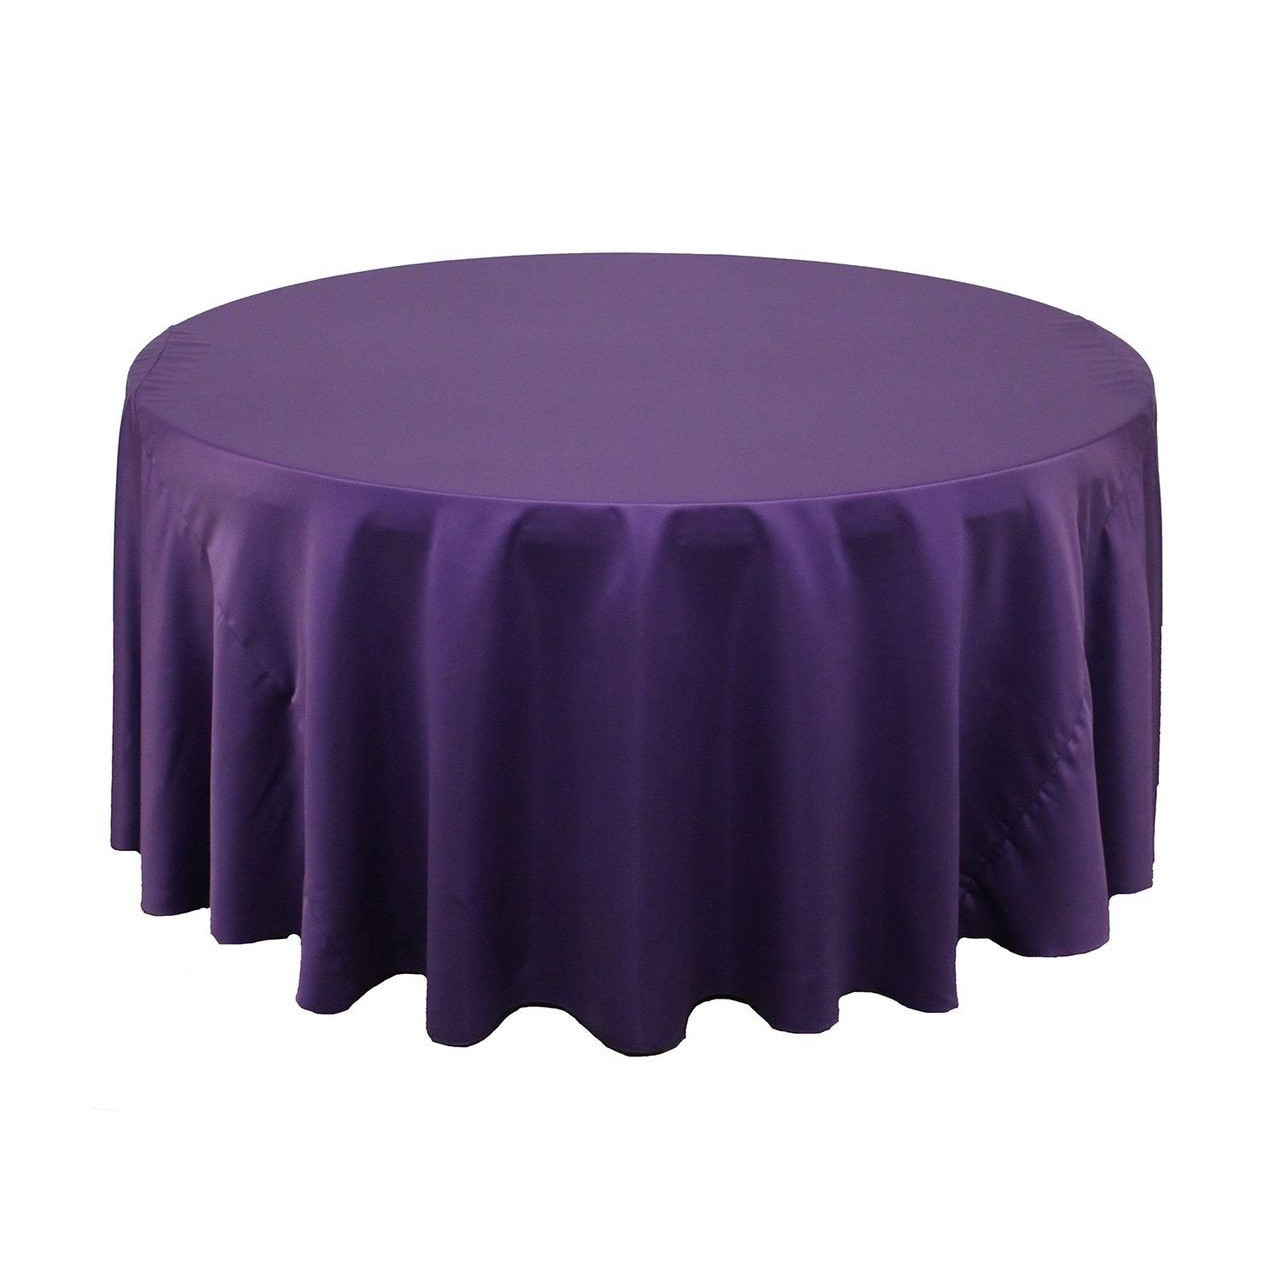 Wholesale Wedding Table Linens 132 inch Lu0027amour Round Tablecloths Purple | Wholesale Wedding Table Linens